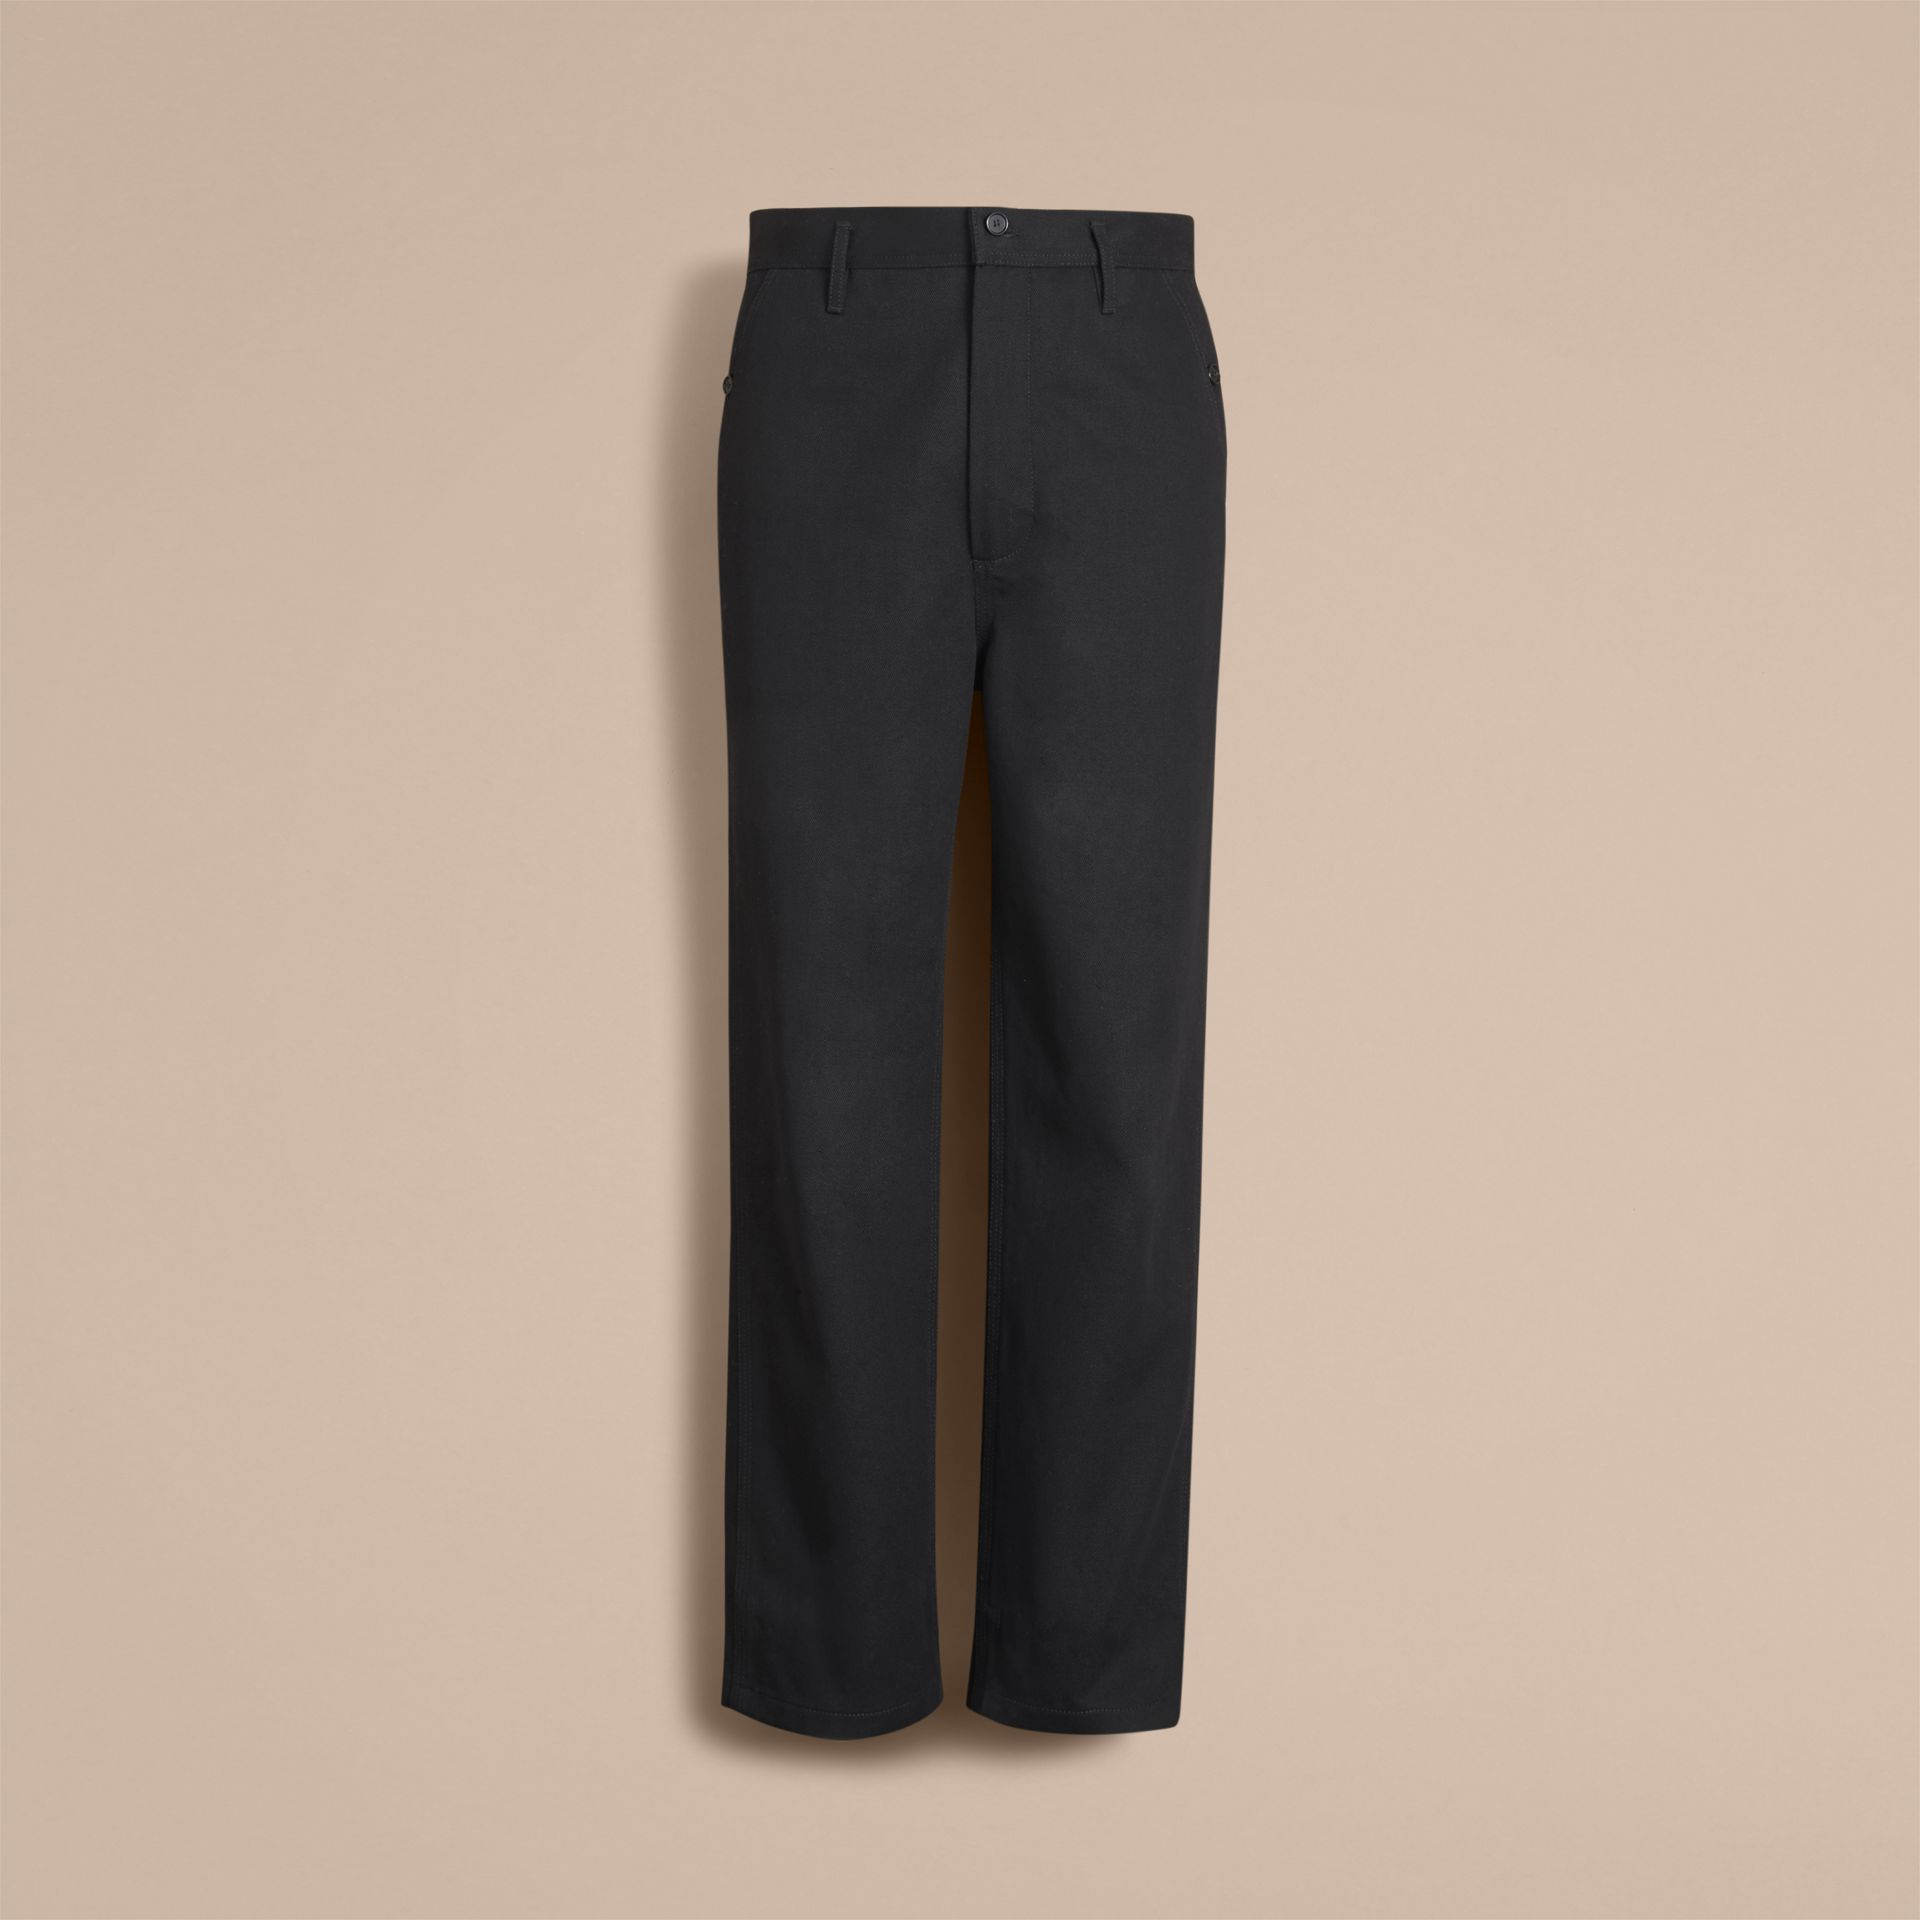 Cotton Twill Cropped Workwear Trousers - Men | Burberry - gallery image 4